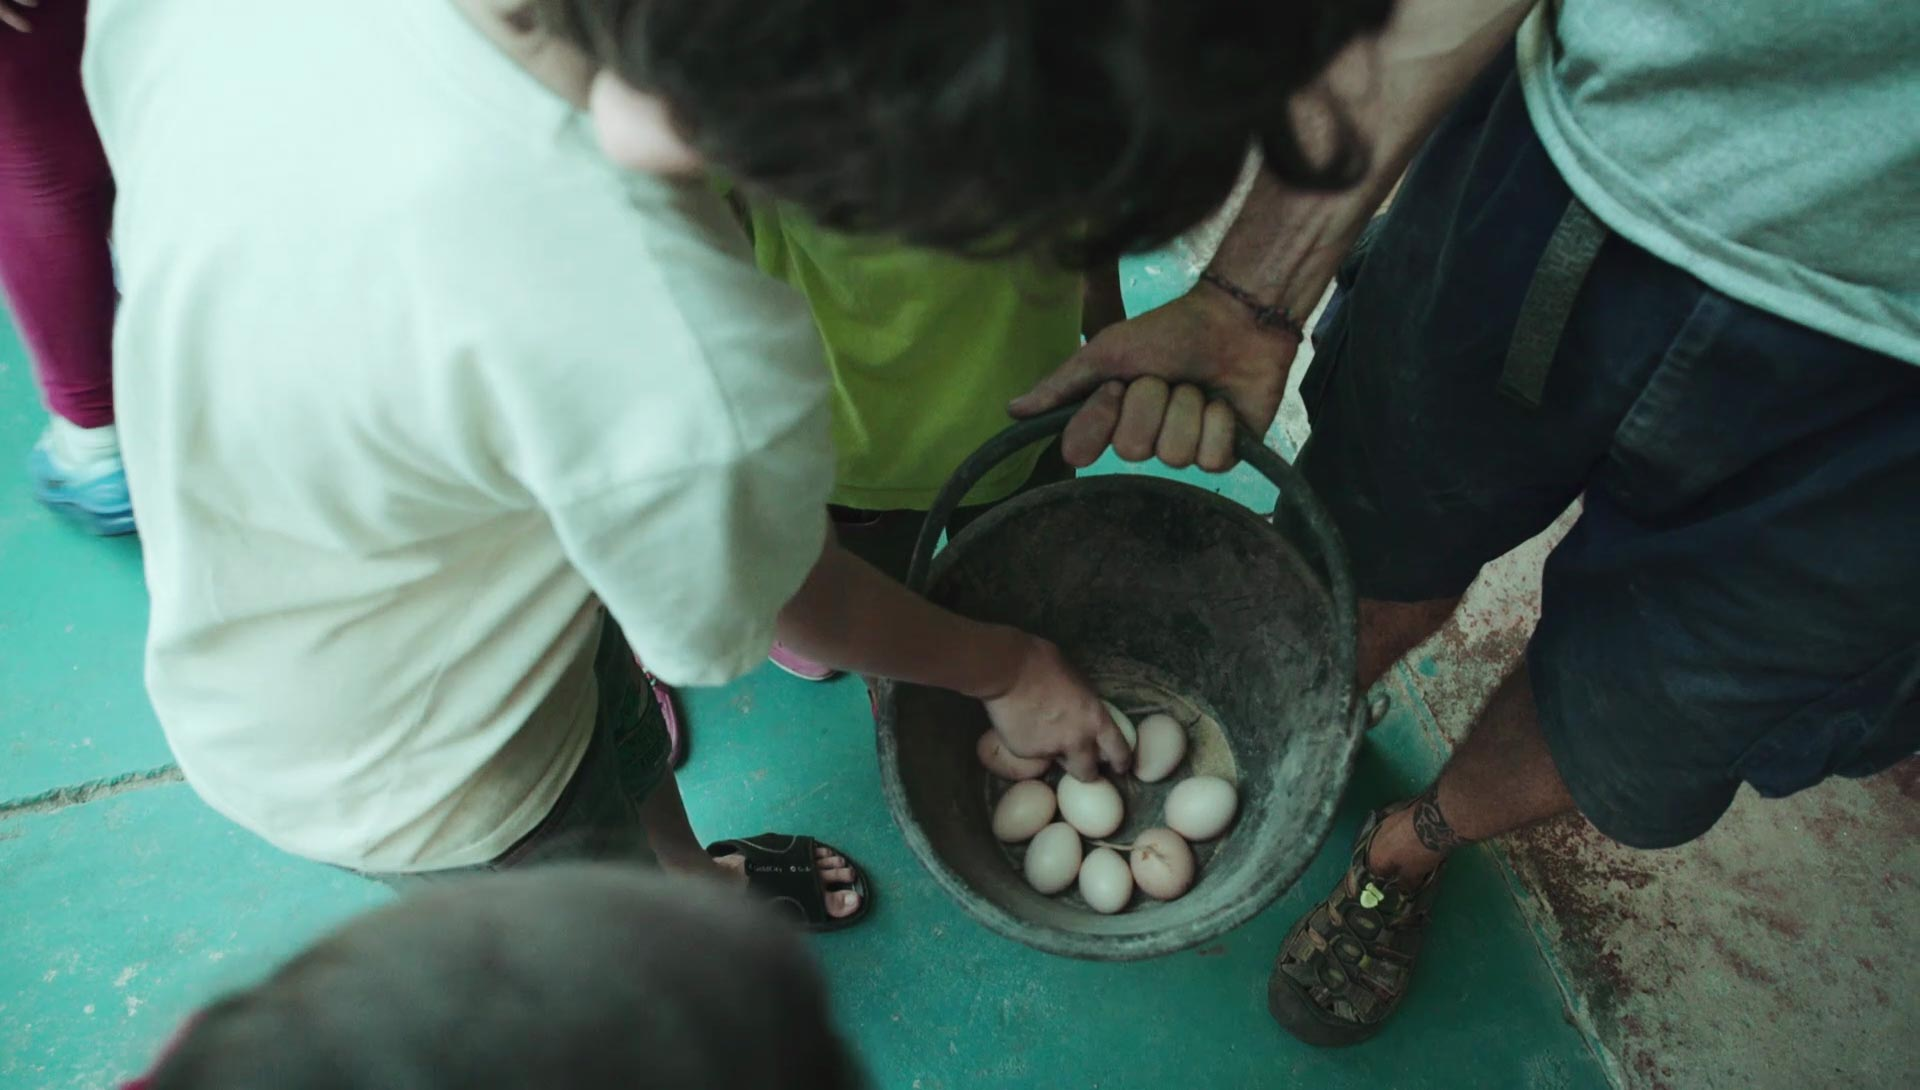 Magical Alchemy. Turning food waste into eggs, with chickens!